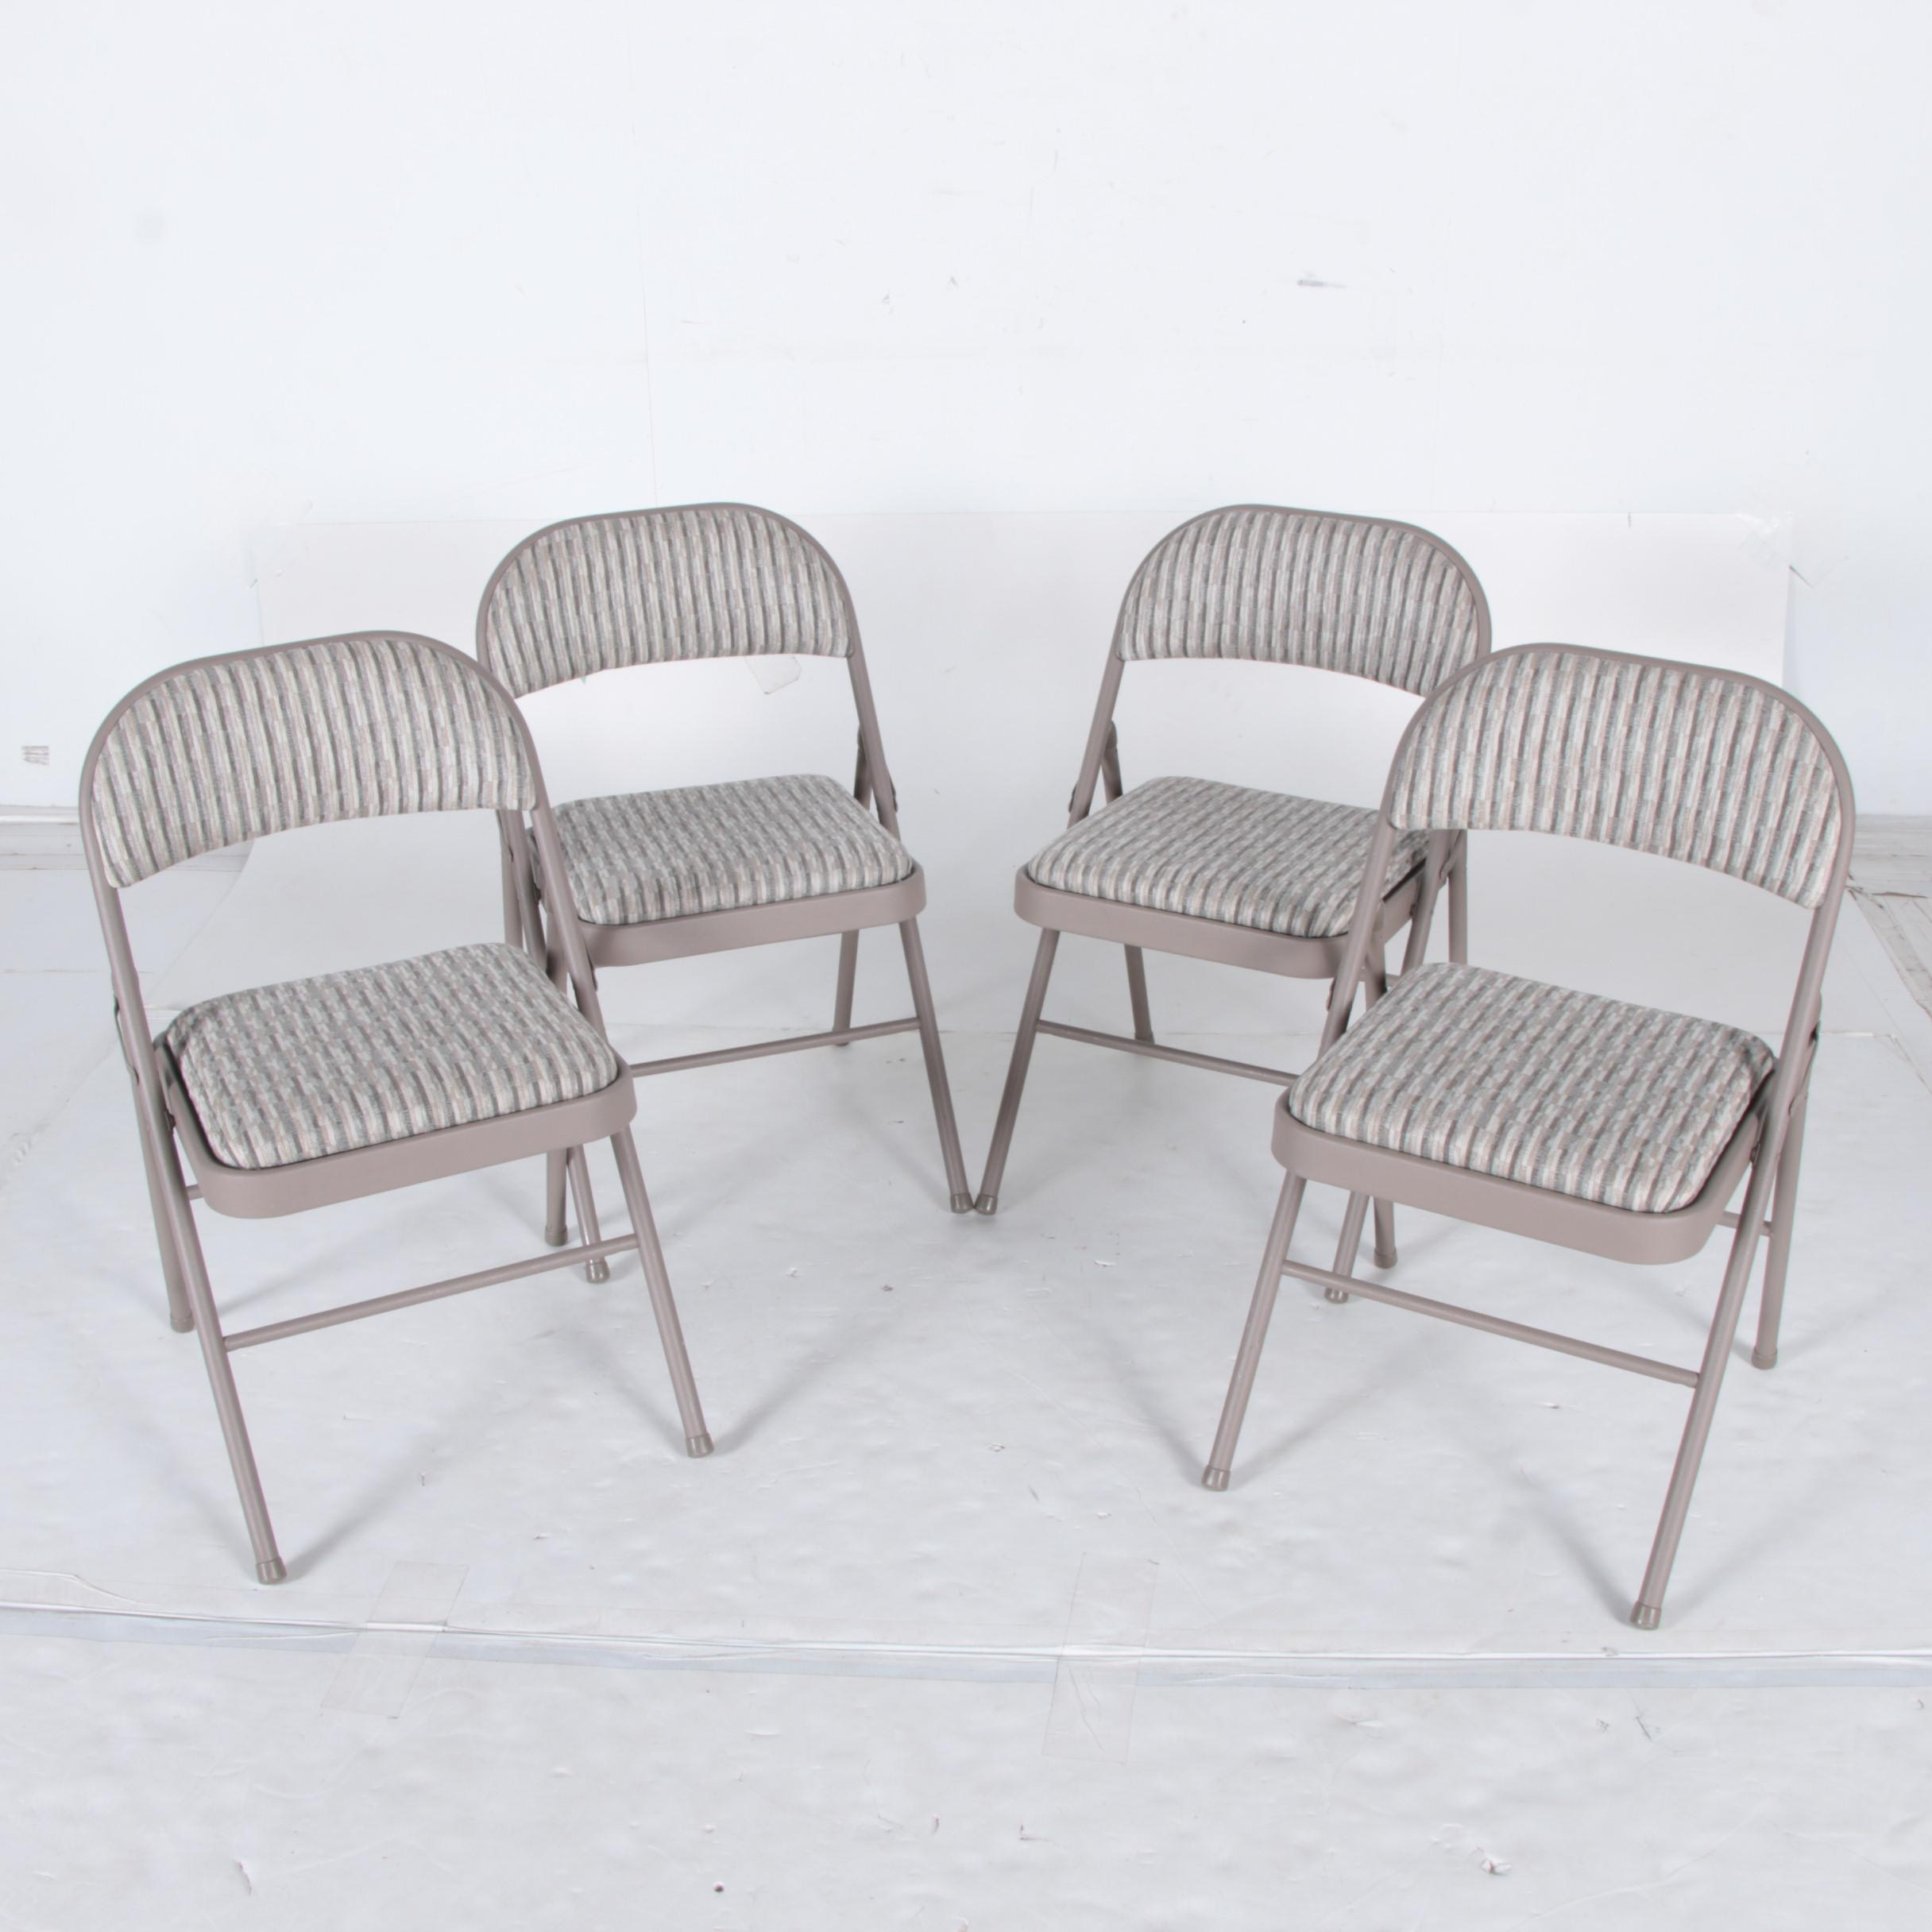 Set of Folding Metal Chairs